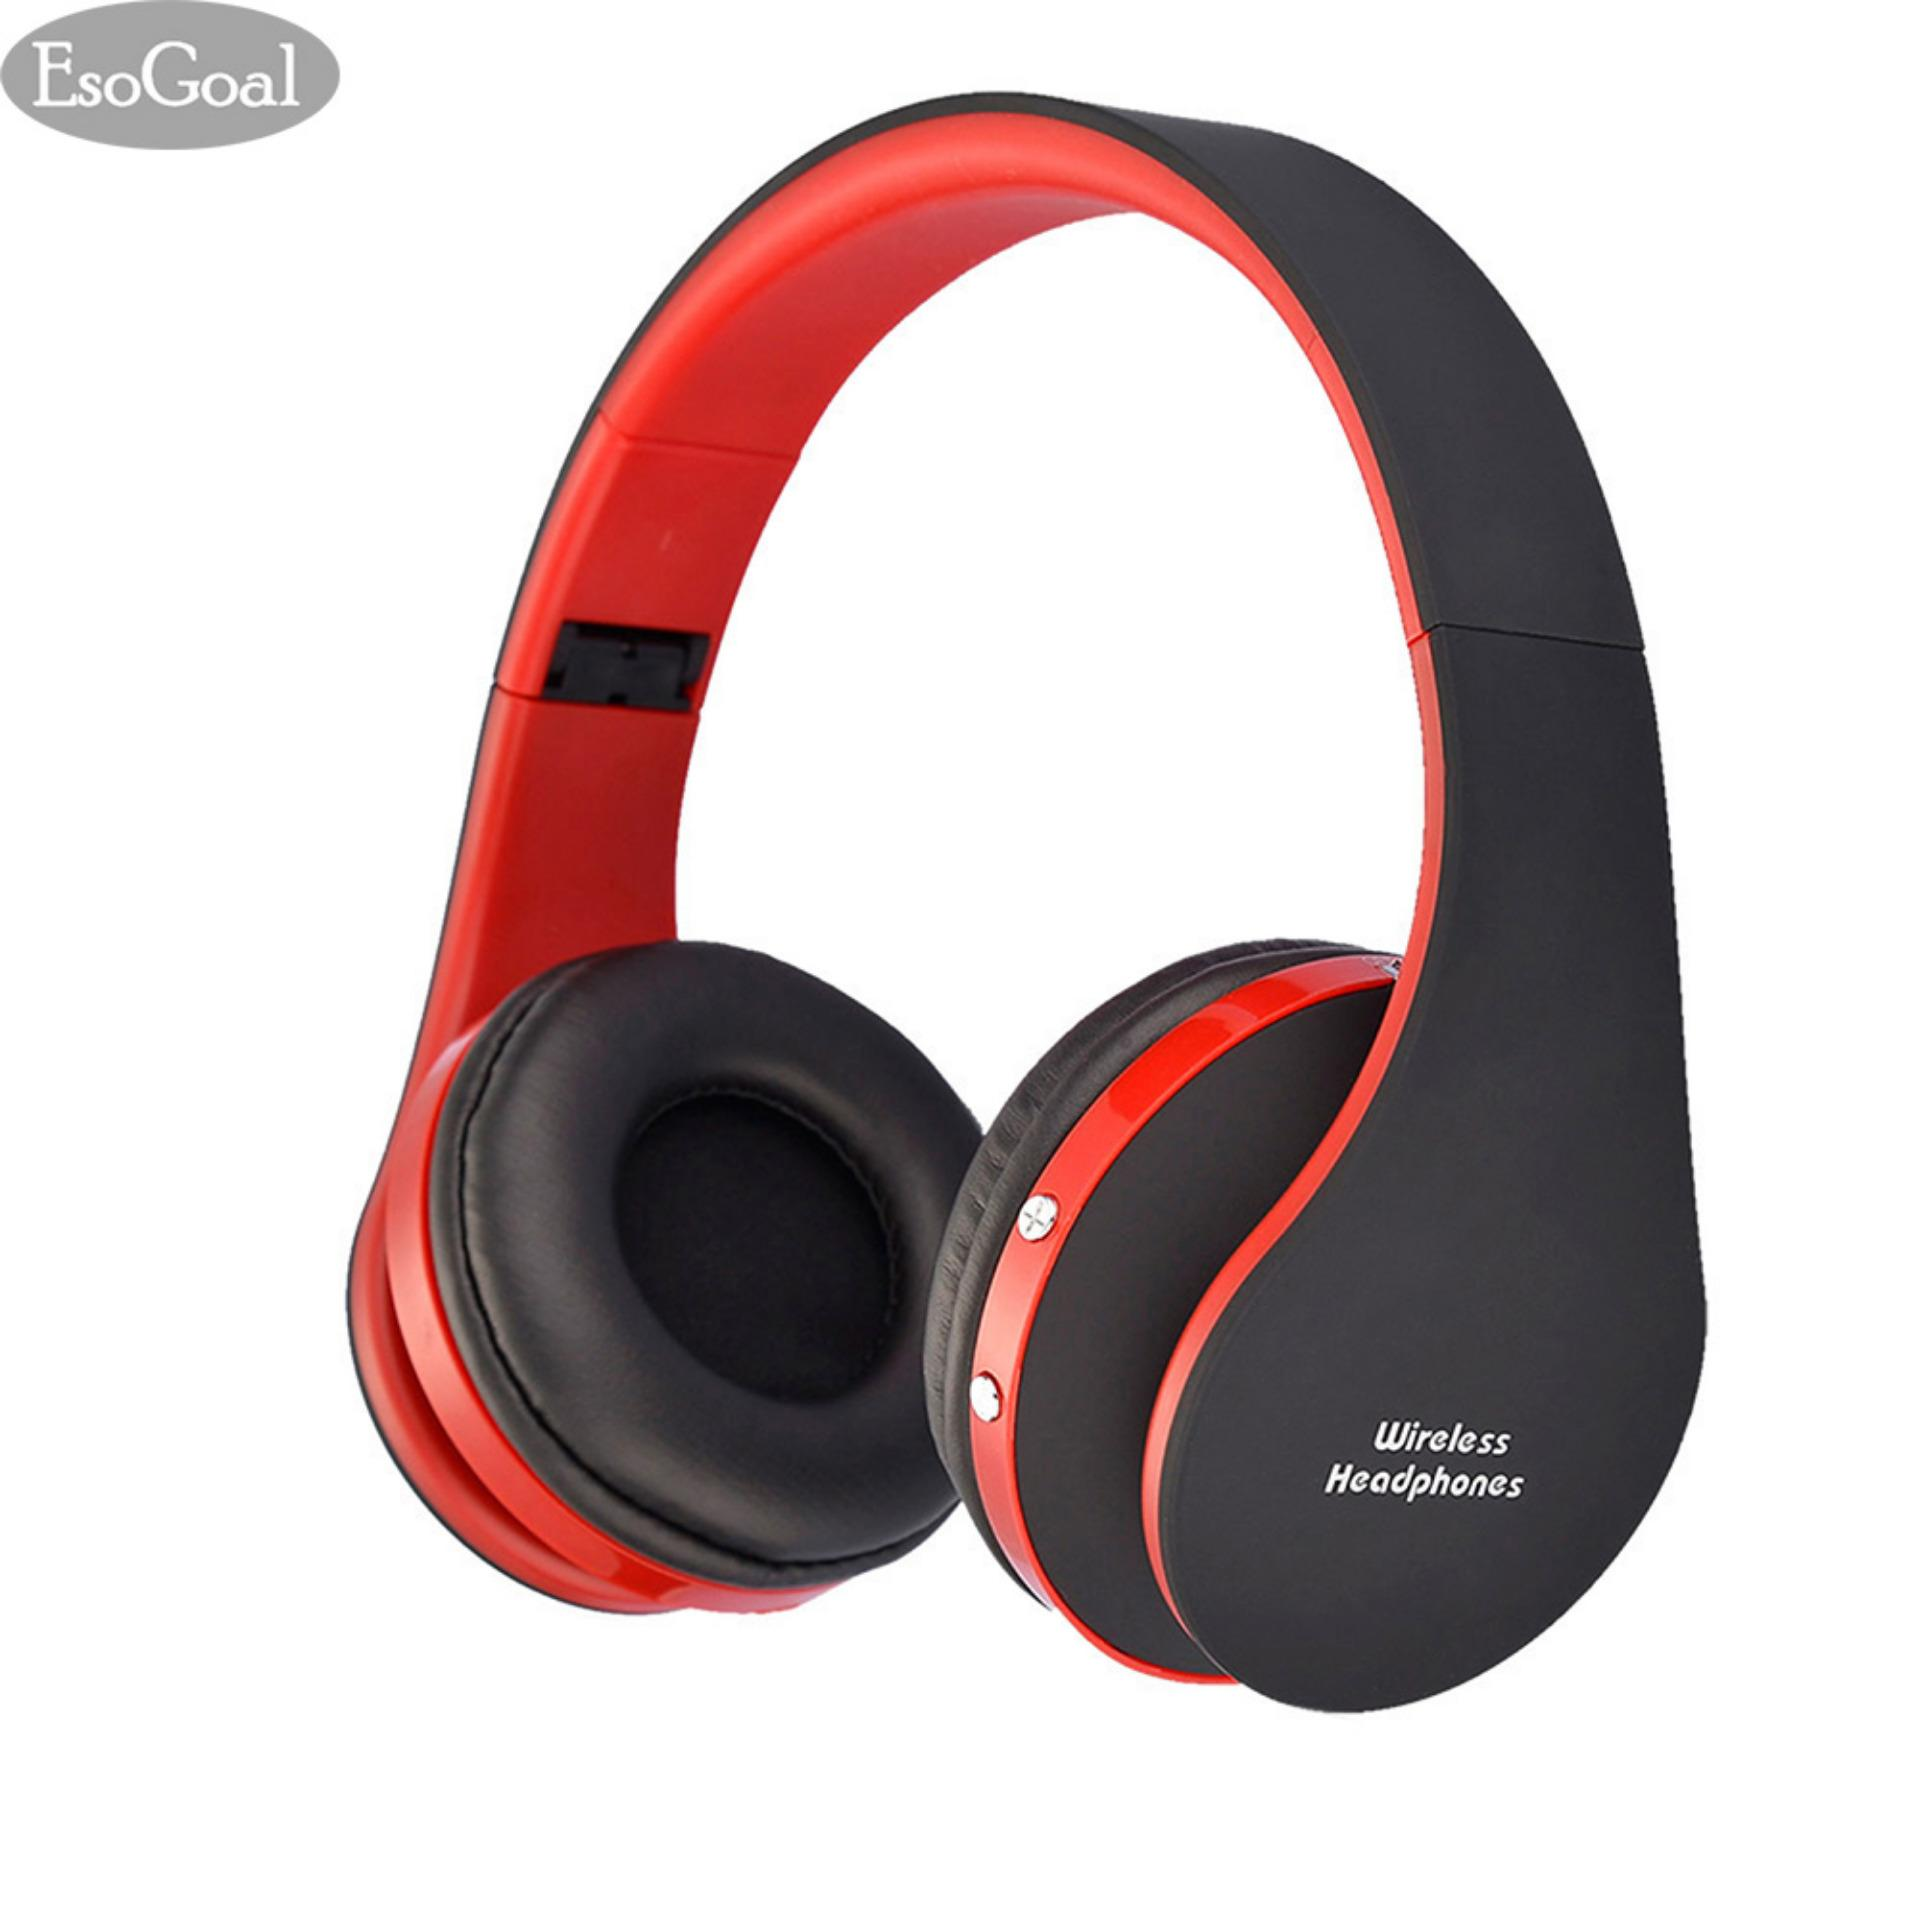 Harga Esogoal Nirkabel Bluetooth V4 1 Headphone In Ear Earphone Stereo Earbud Sport Headset Dengan Mic Merah Hitam Terbaik